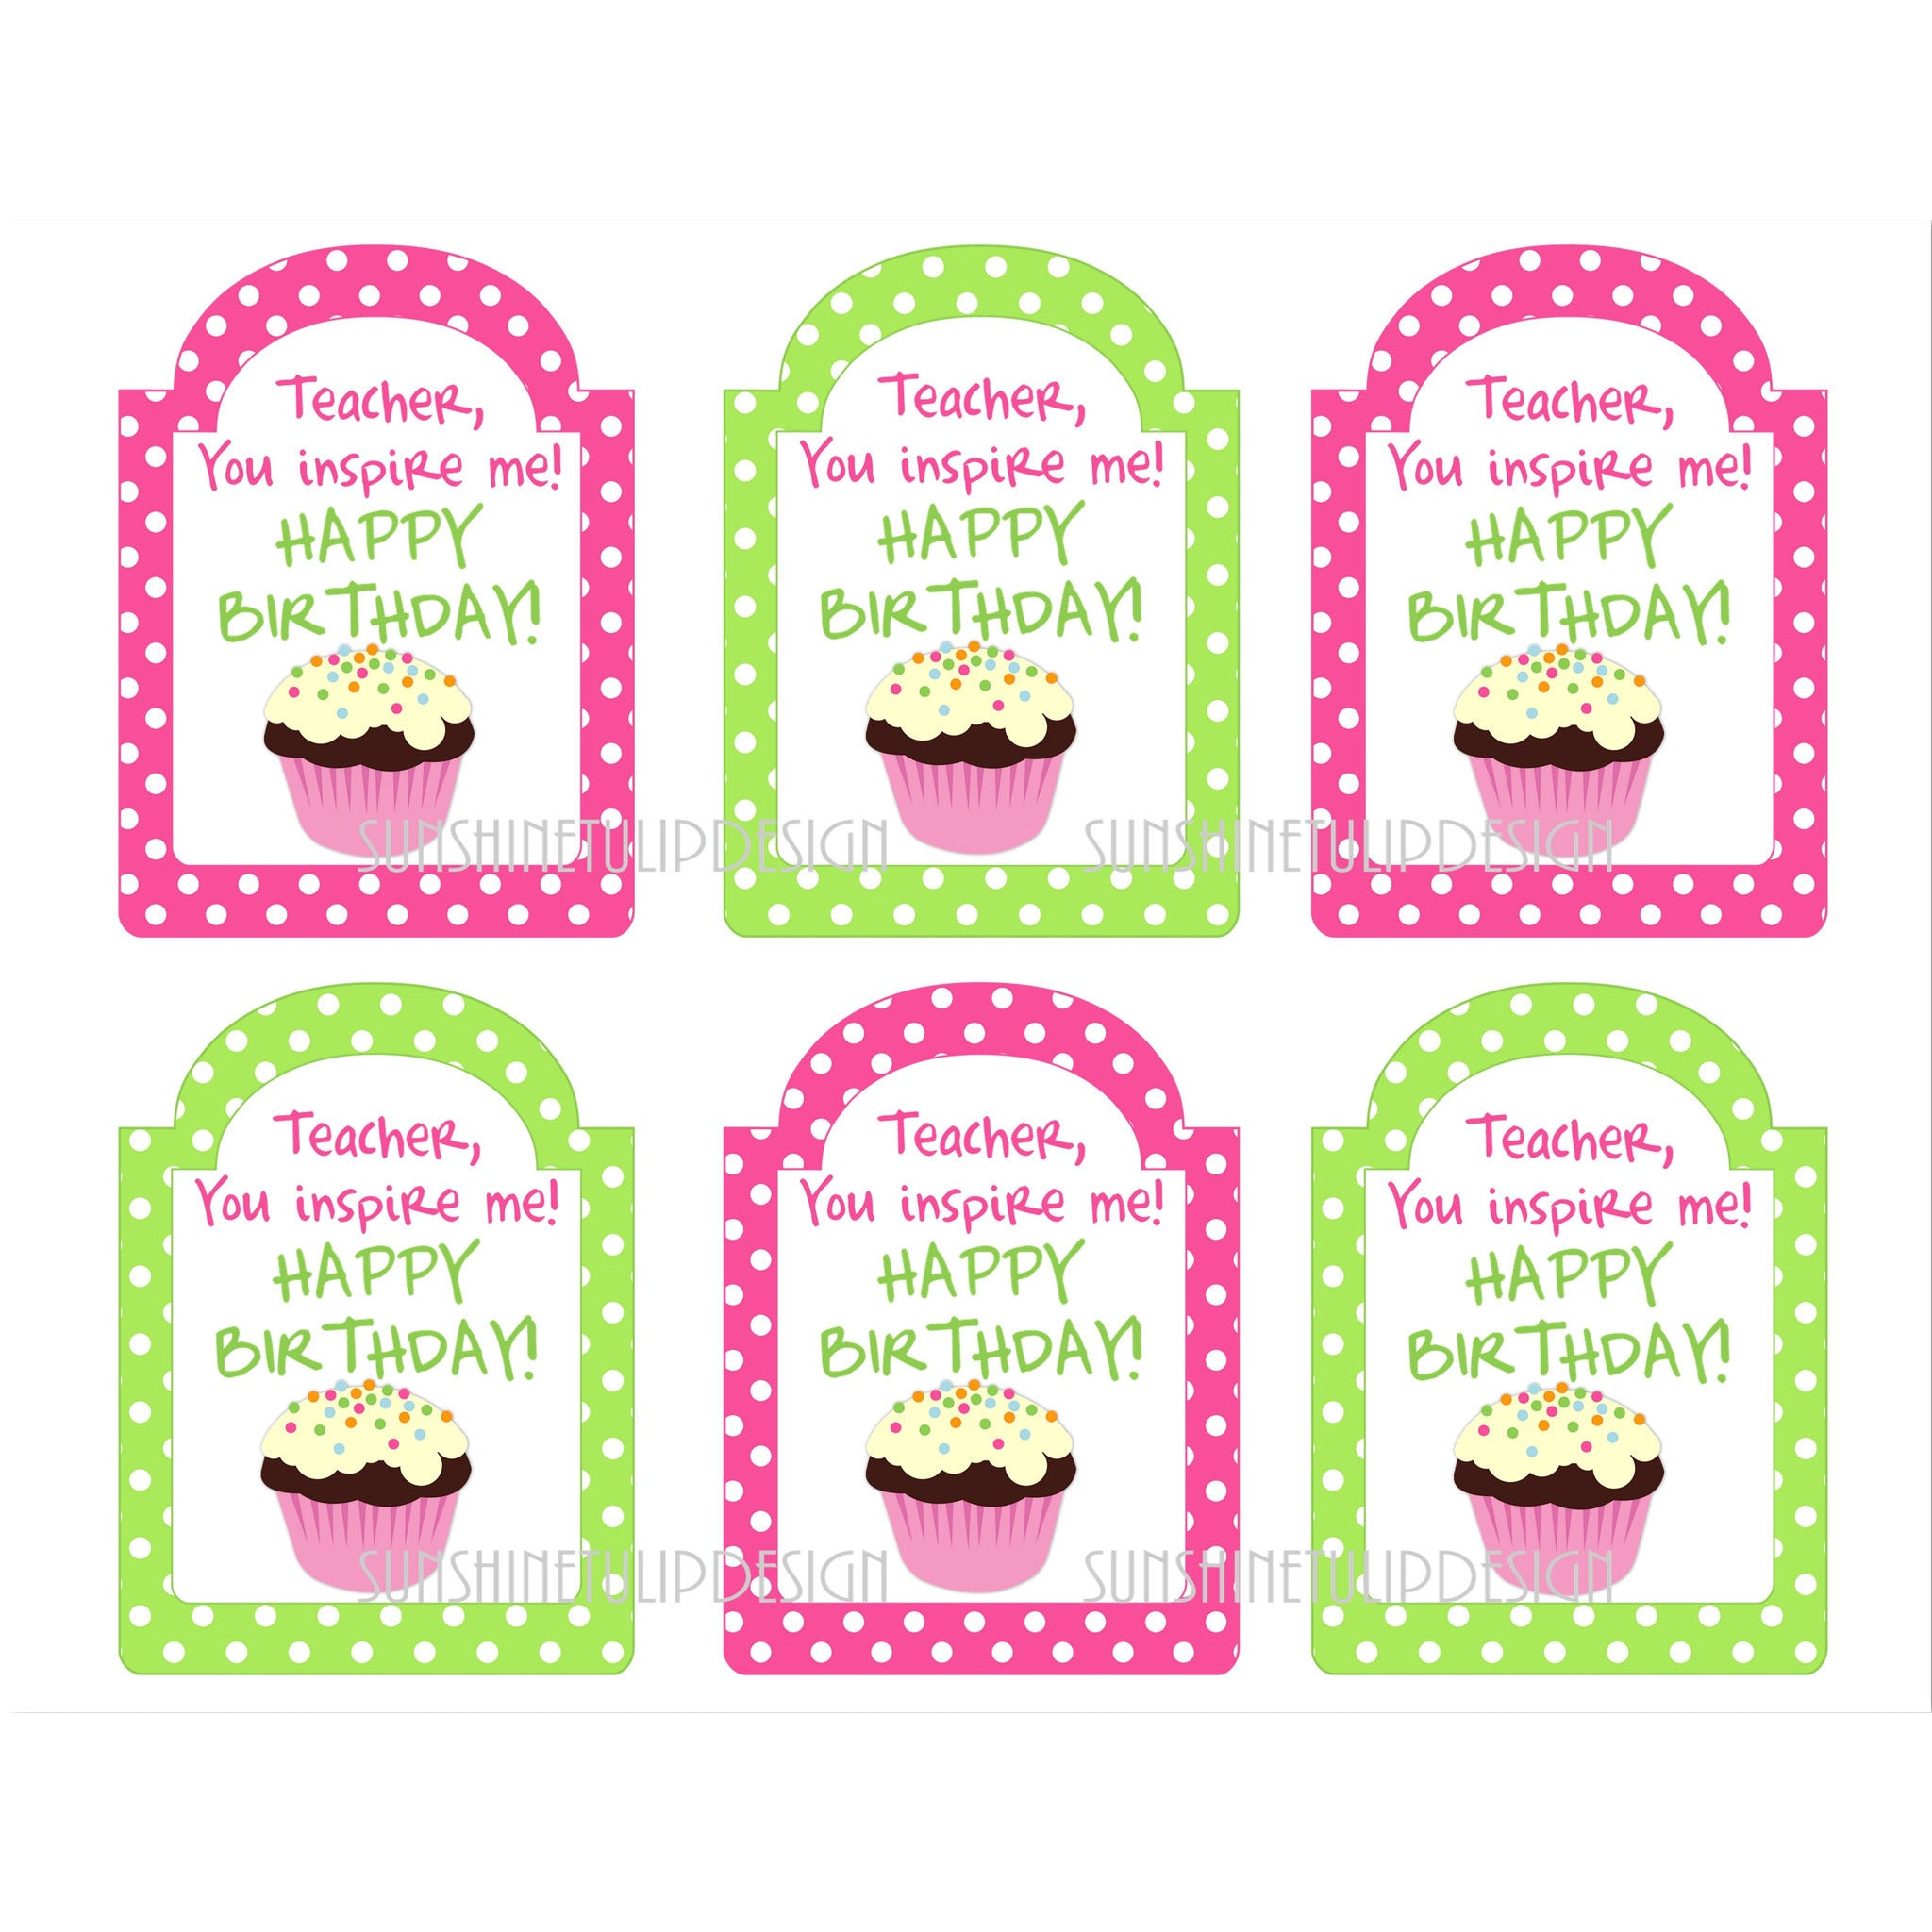 image regarding Happy Birthday Tag Printable called Printable Trainer Birthday Reward Tags, Pleased Birthday Printable Instructor Tags by means of SUNSHINETULIPDESIGN